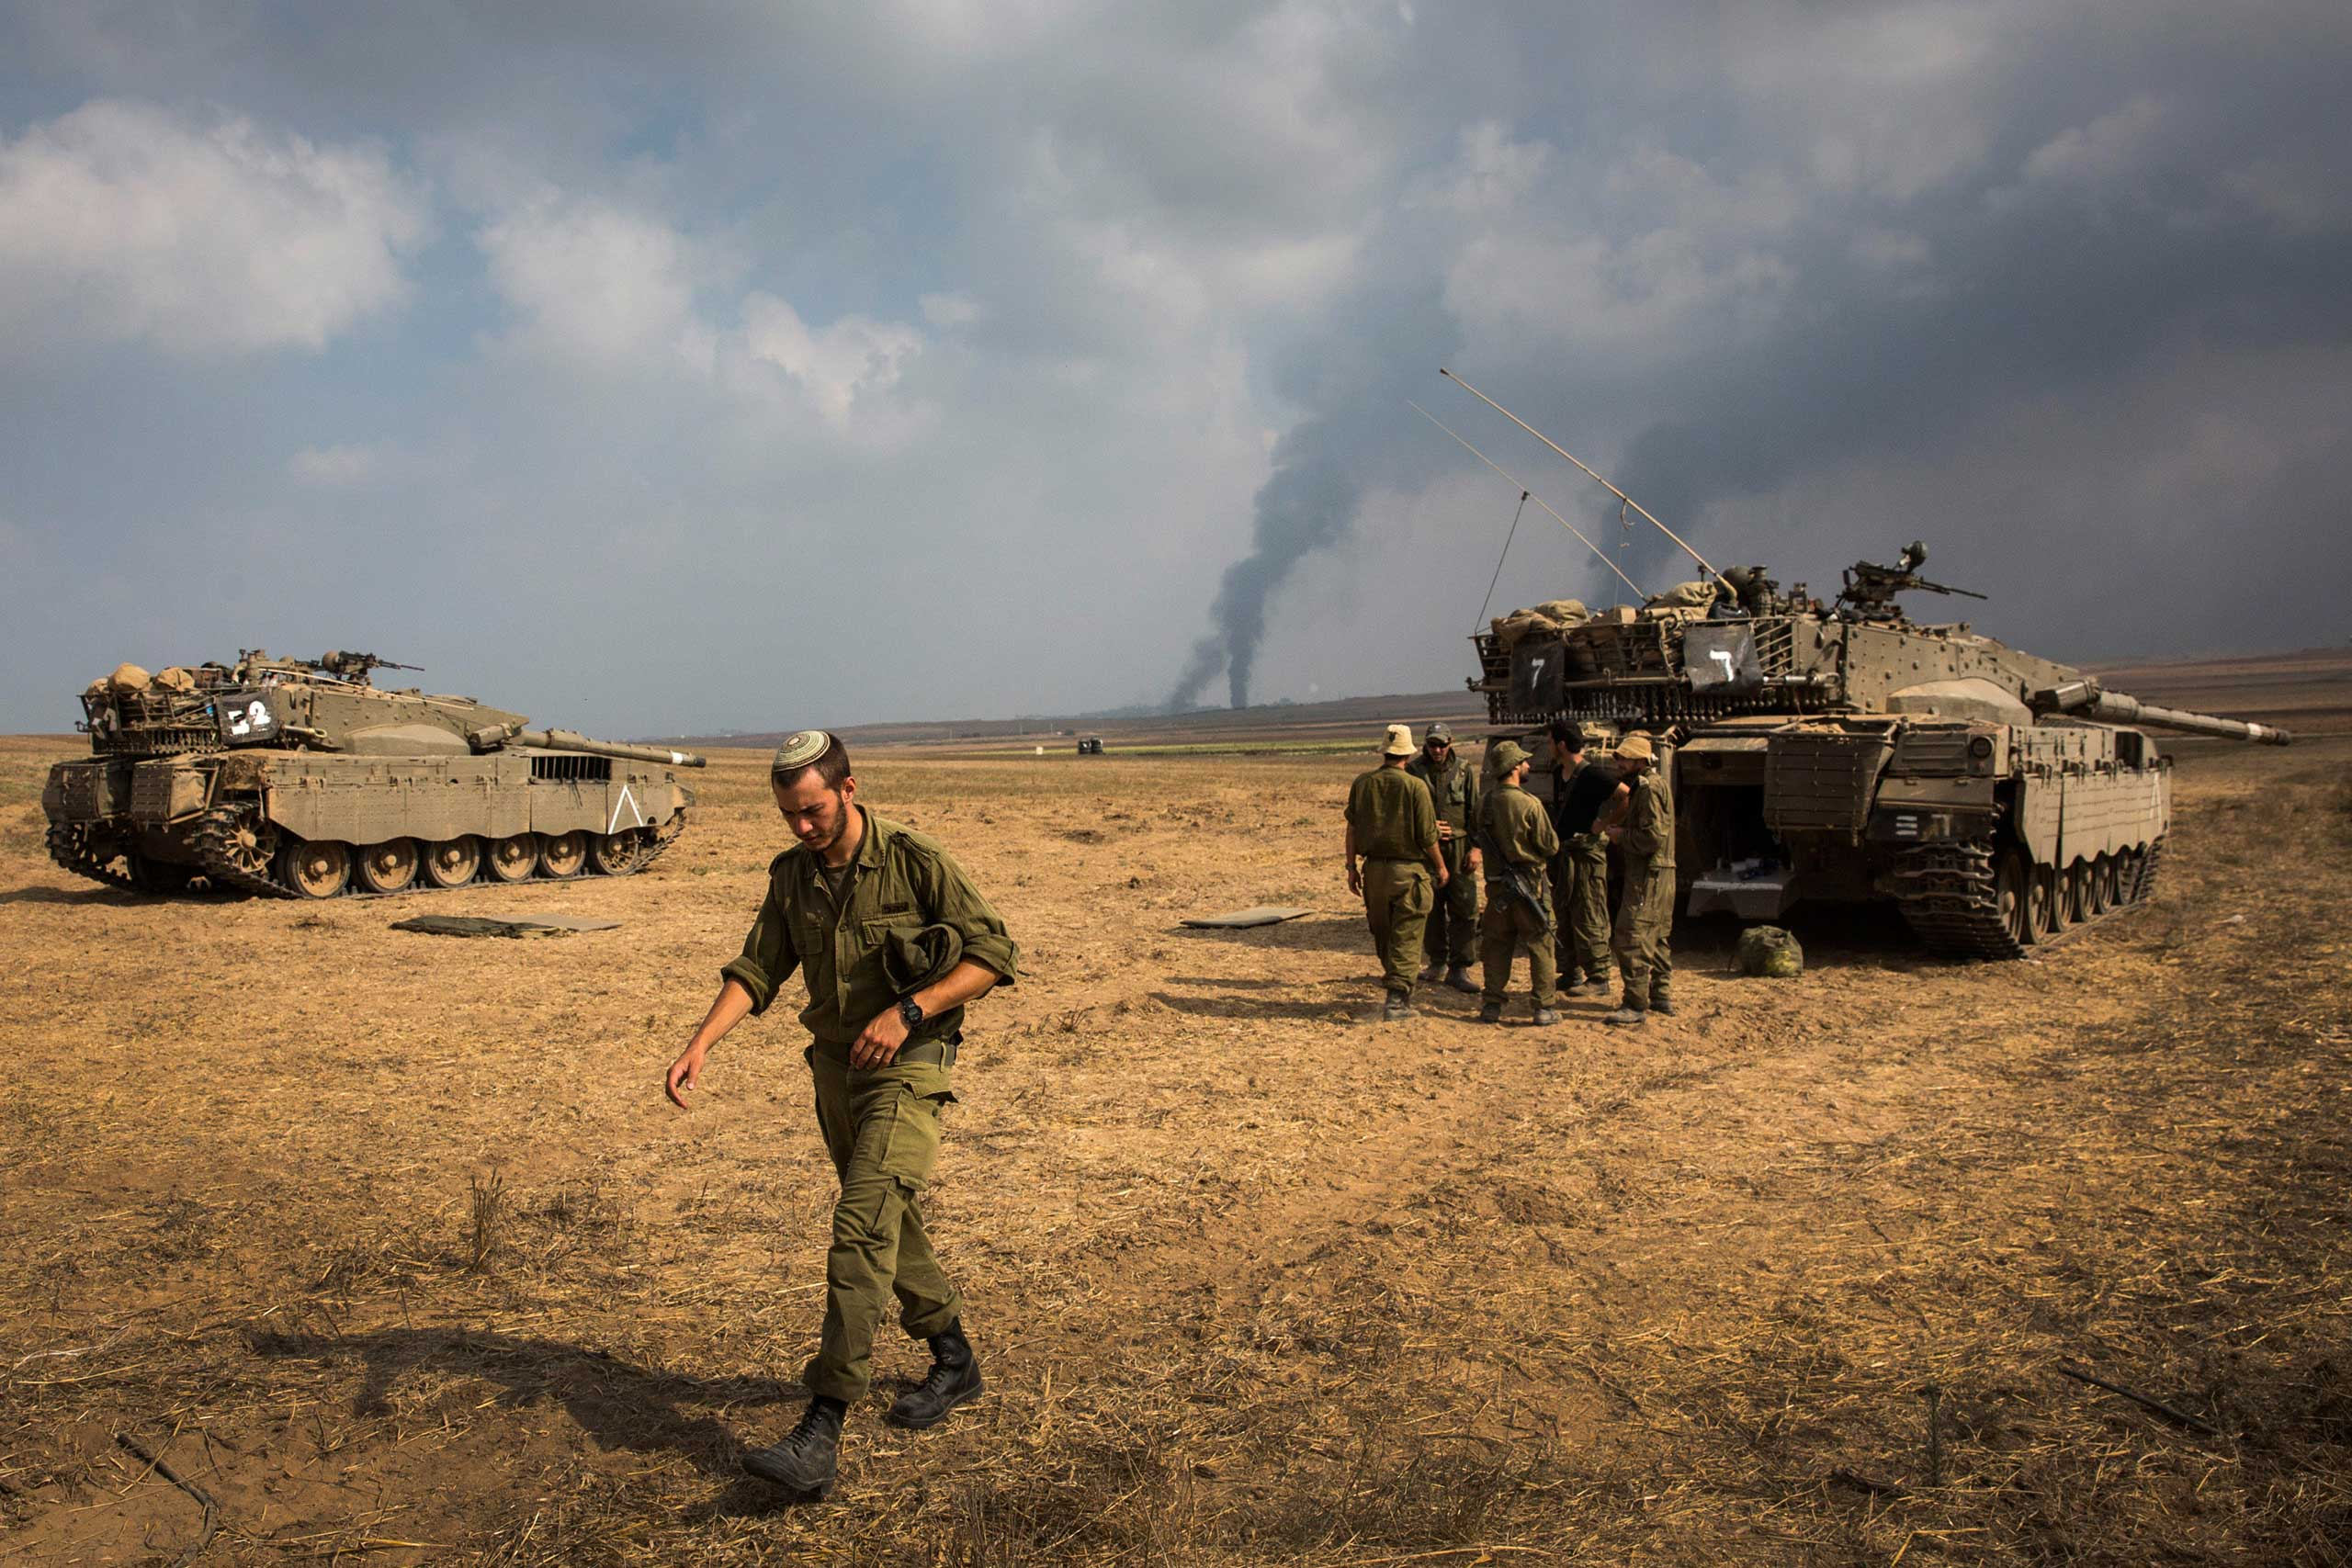 Israeli soldiers stand near their tank while smoke due to airstrikes and shelling rises from Gaza near Sderot, Israel, July 22, 2014.